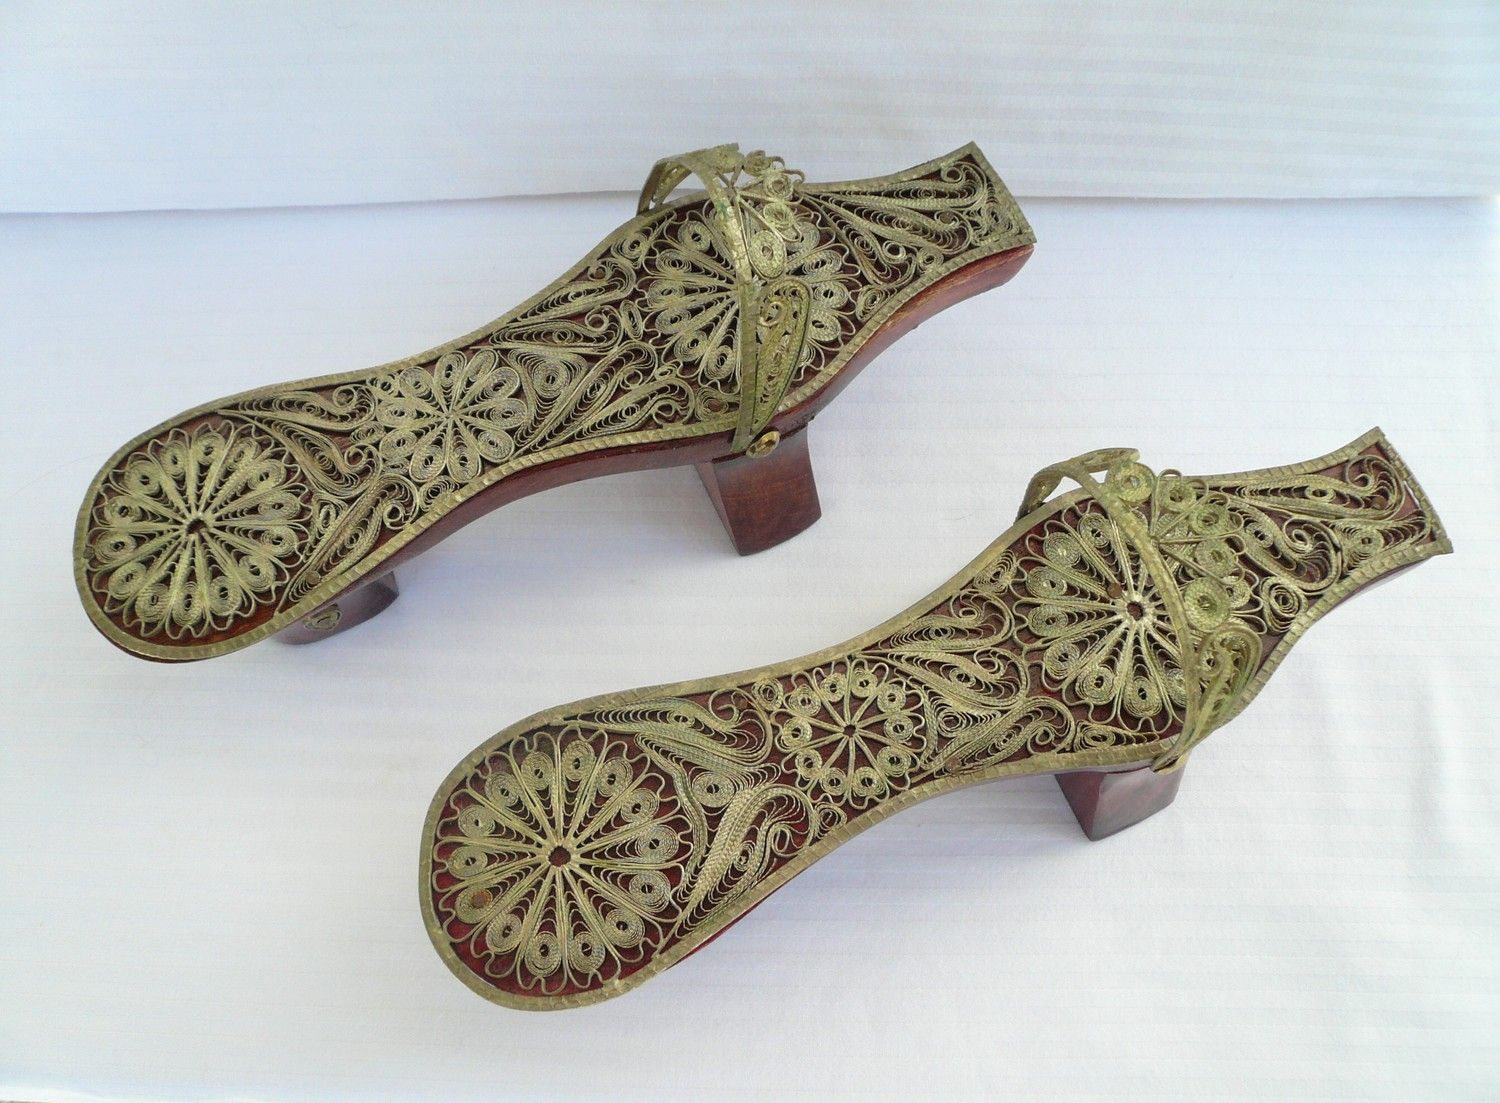 Vintage Japanese Geisha Shoes In Wood And Metal Shoes World Japanese Geisha Beautiful Hair Accessories